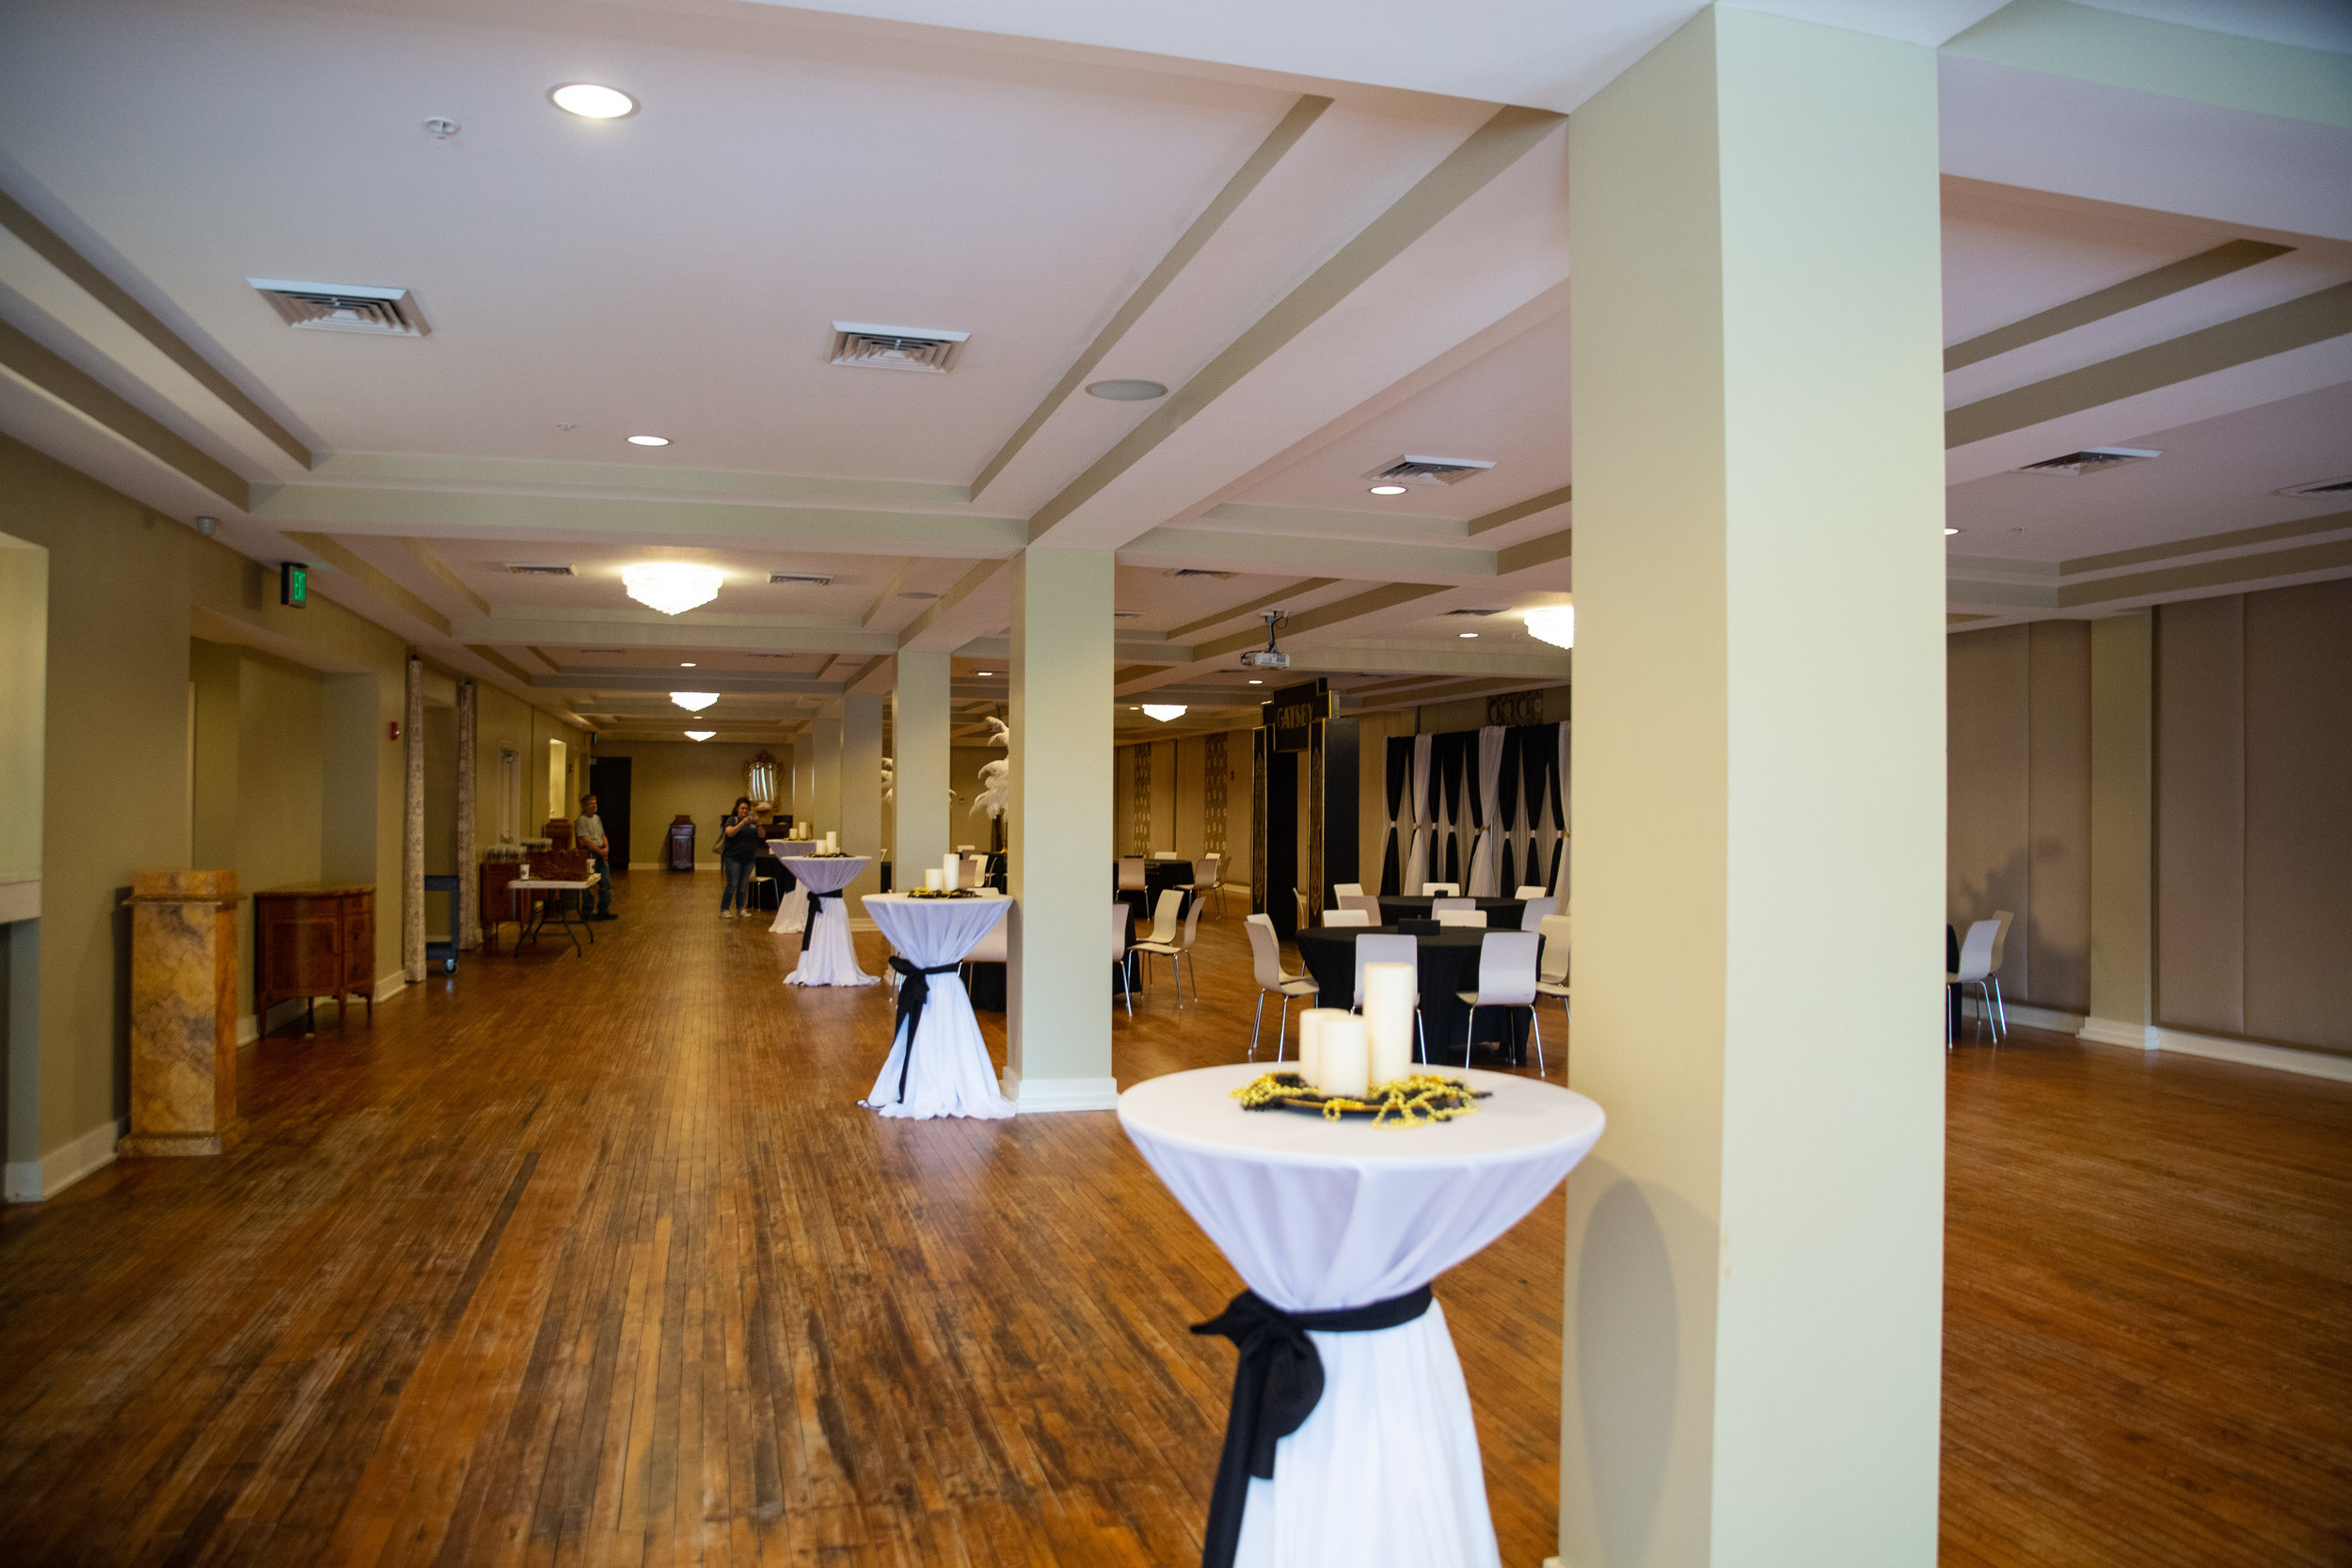 The ballroom is clean even if it's a little plain. Your decorations will make or break this space.